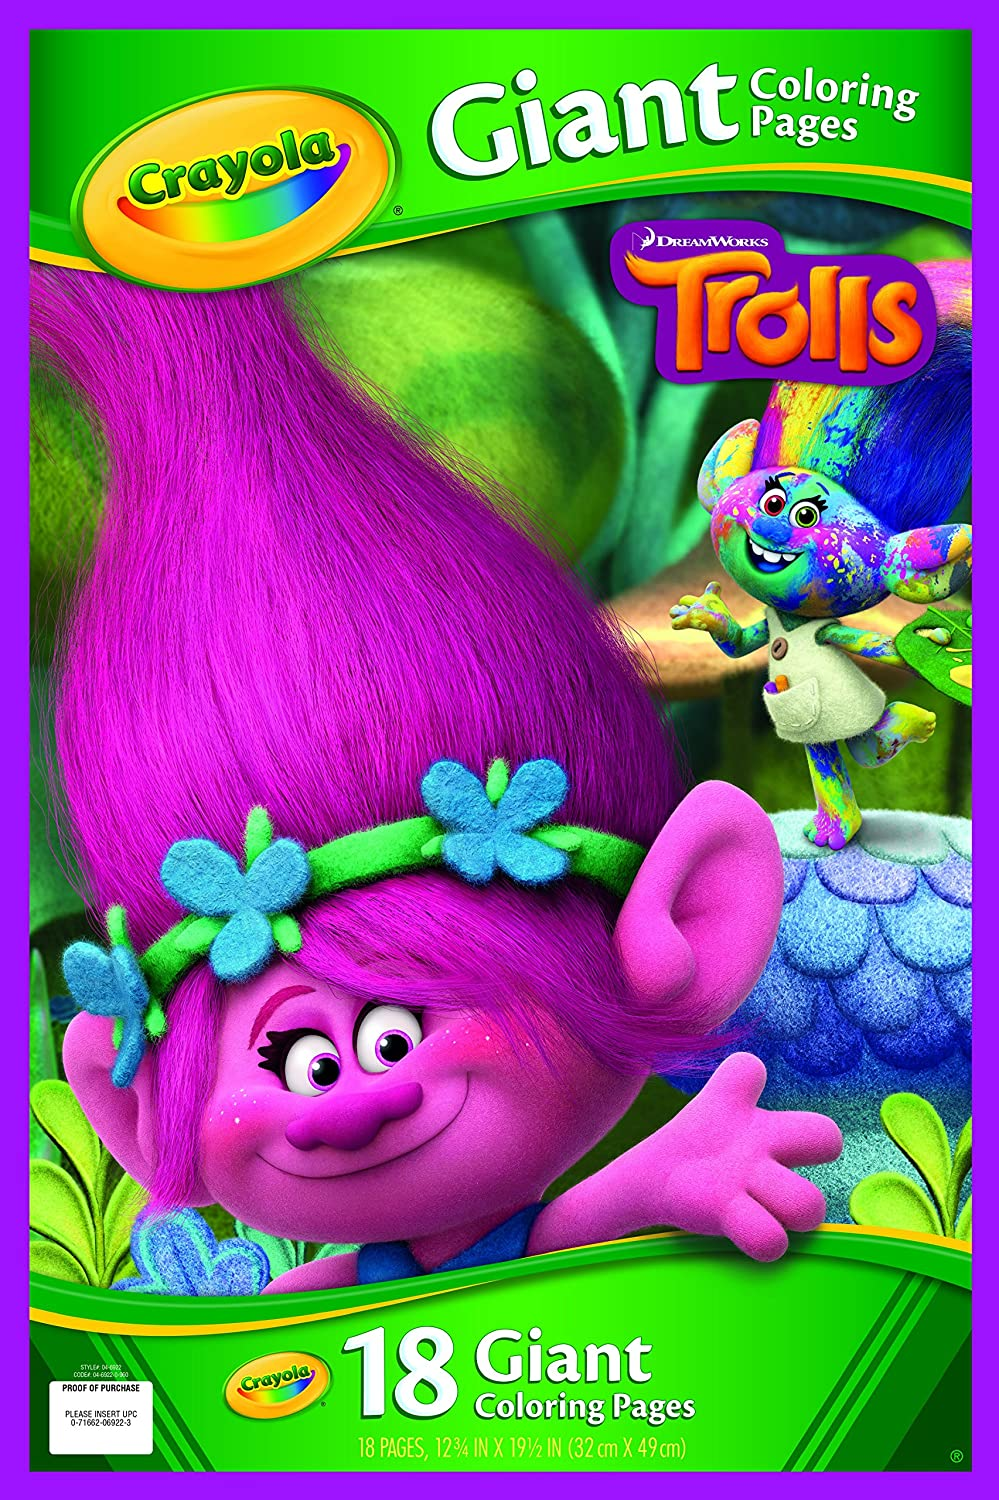 Moana coloring pages crayola - Crayola 04 6922 0 000 Trolls Giant Colouring Pages